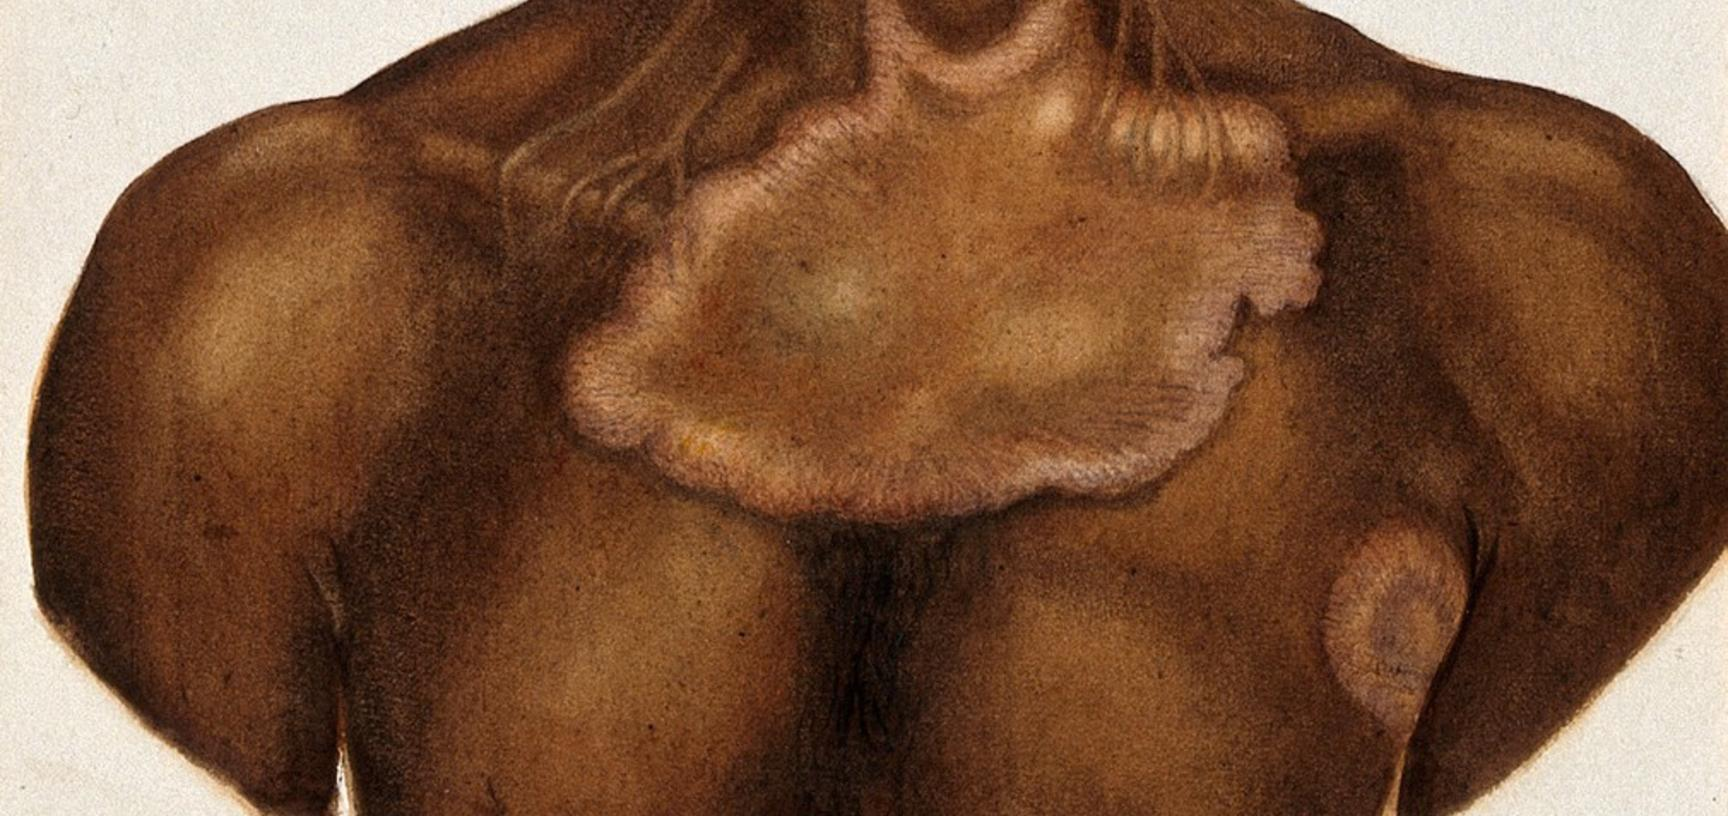 Leprosy of the chest on an Indian man. Watercolour (by Jane Jackson ?), 1921/1950 (?), after a (painting ?) by Ernest Muir, ca. 1921.